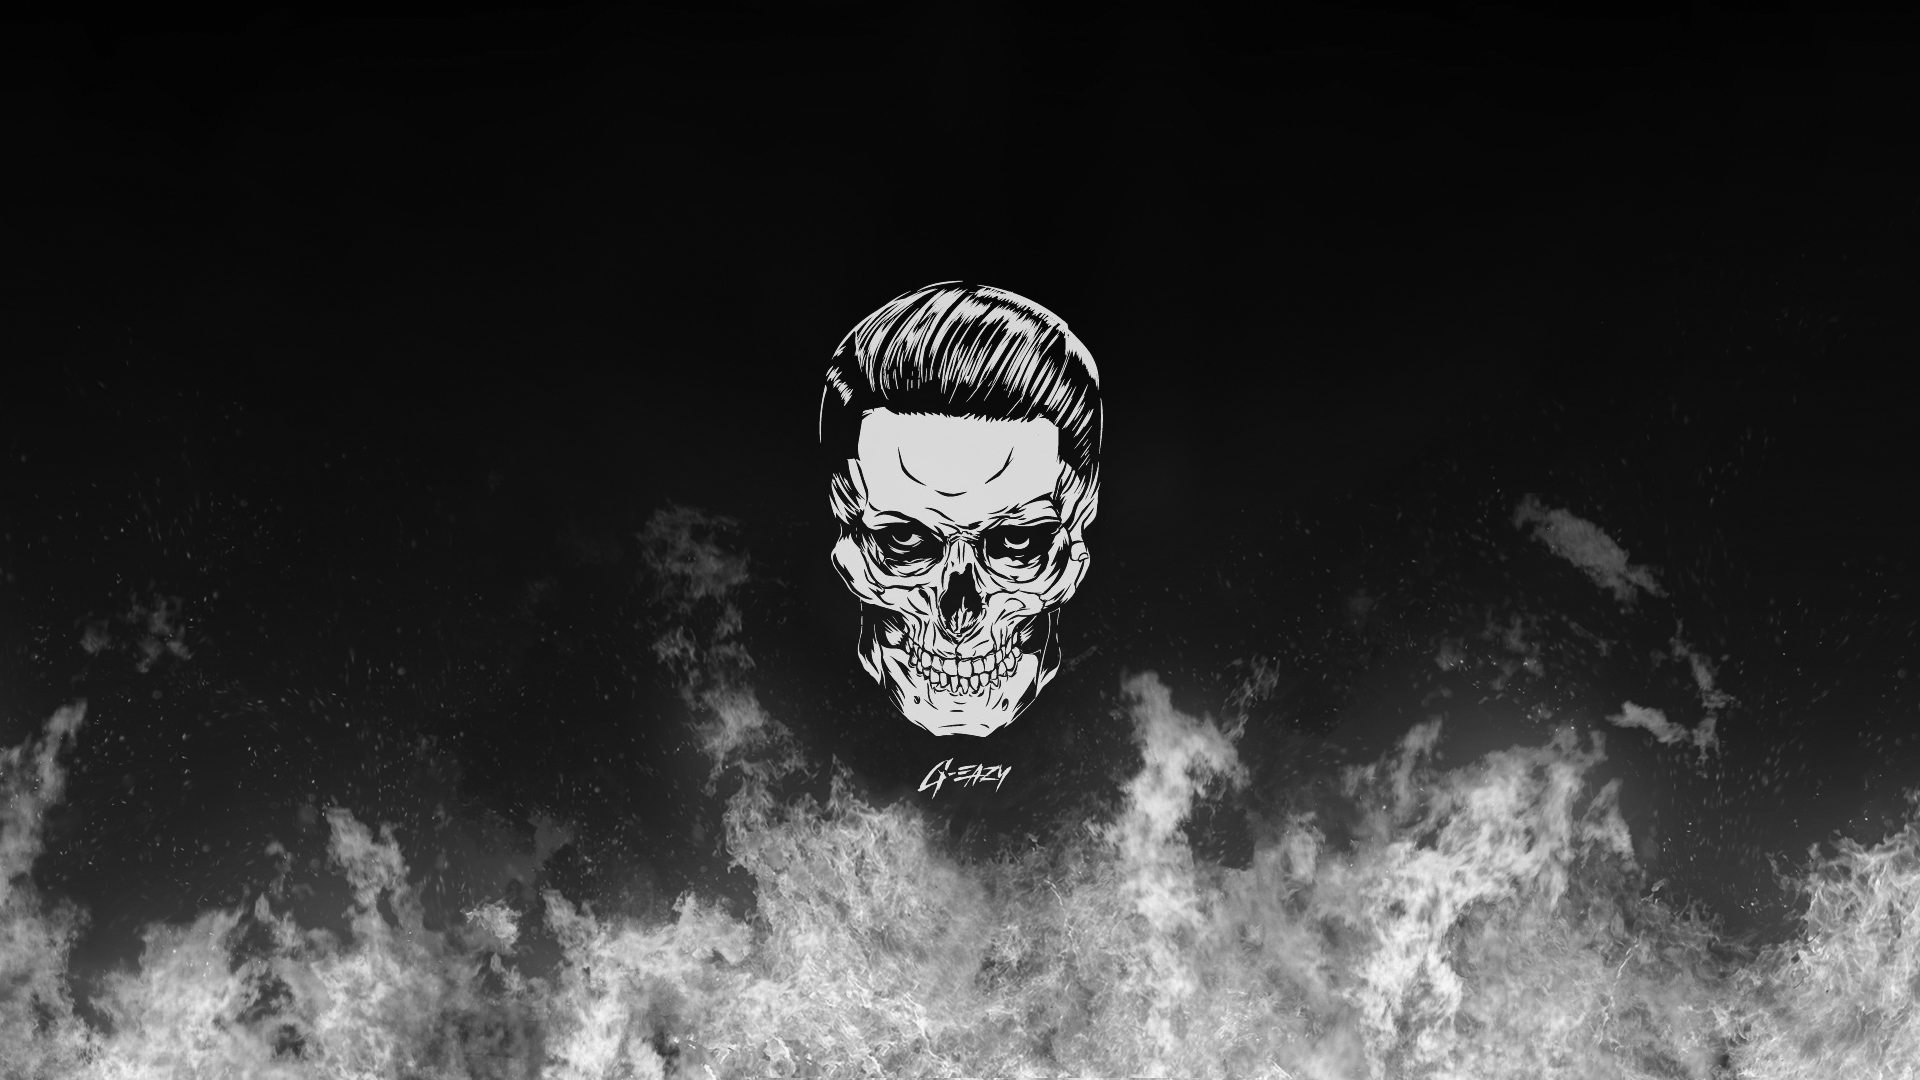 eazy Skull HQ Backgrounds HD wallpapers Gallery Gallsourcecom 1920x1080